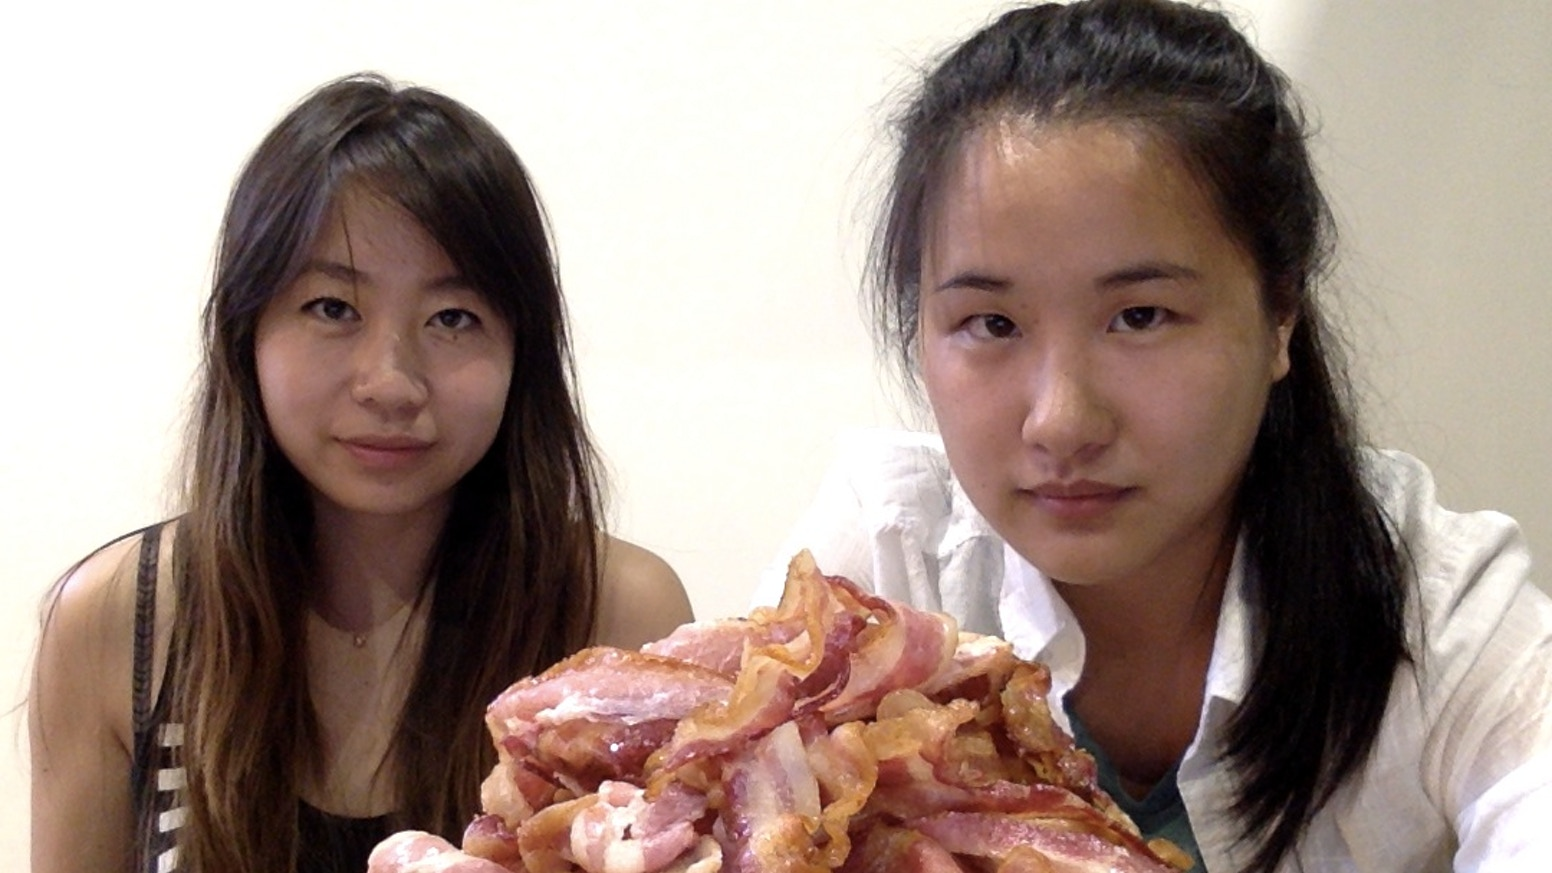 Extremely limited bacon themed dinner with extremely interesting people - September 7, 2014